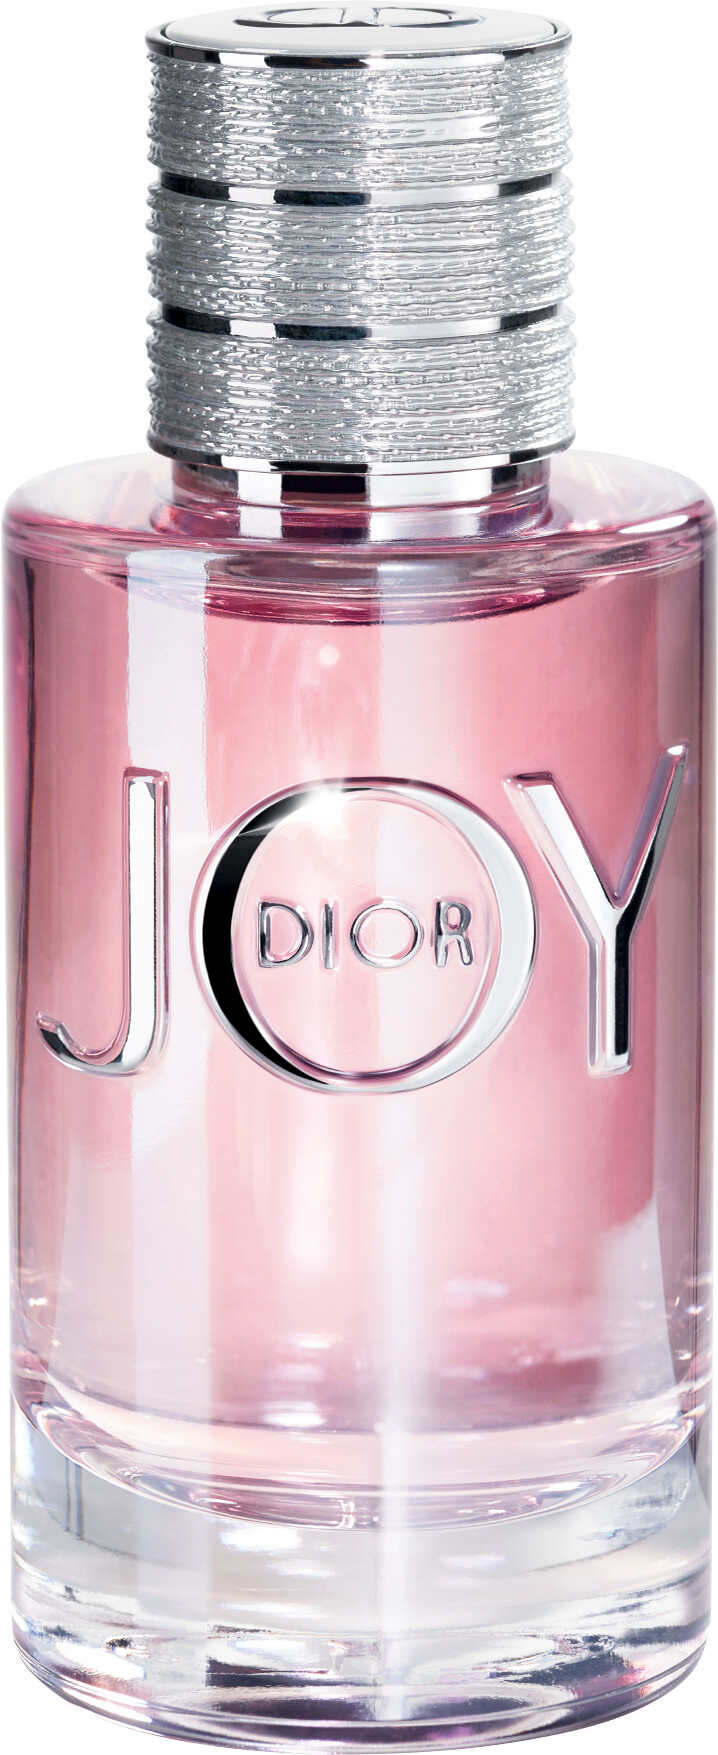 Dior Joy By Dior Eau De Parfum Spray